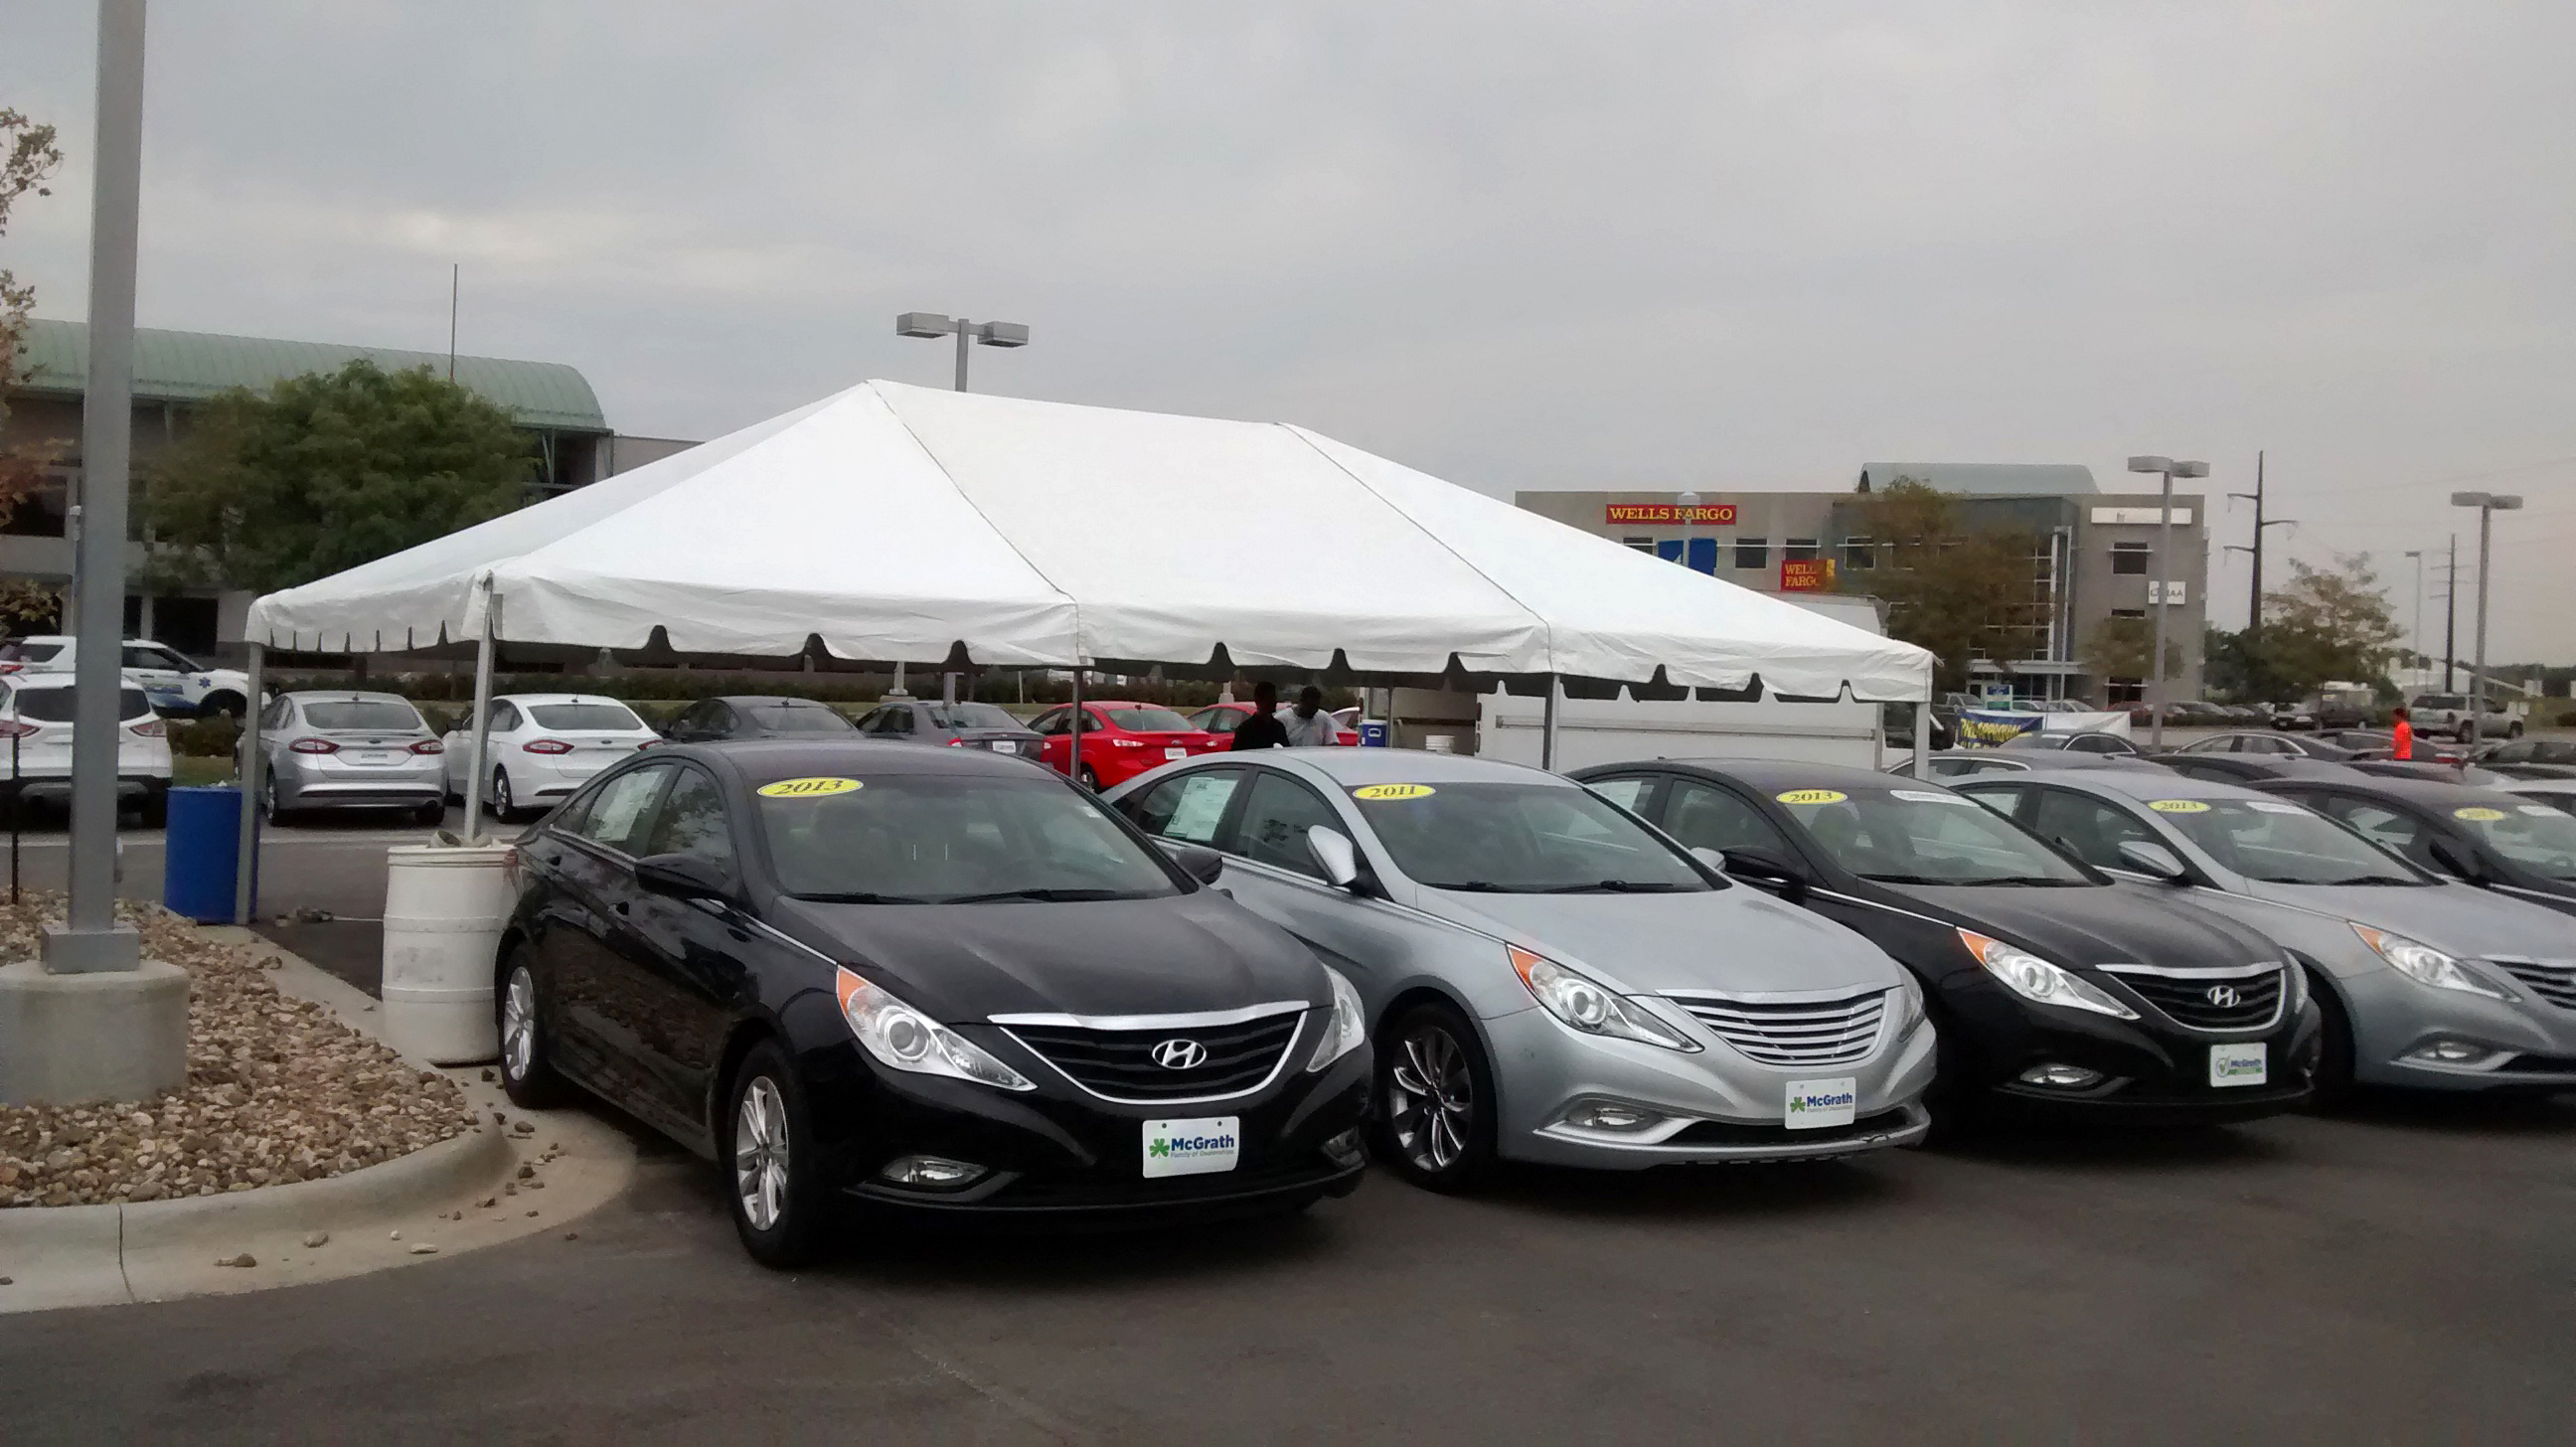 20′ x 30′ frame tent for the grand re-opening at Coralville Used Car Superstore